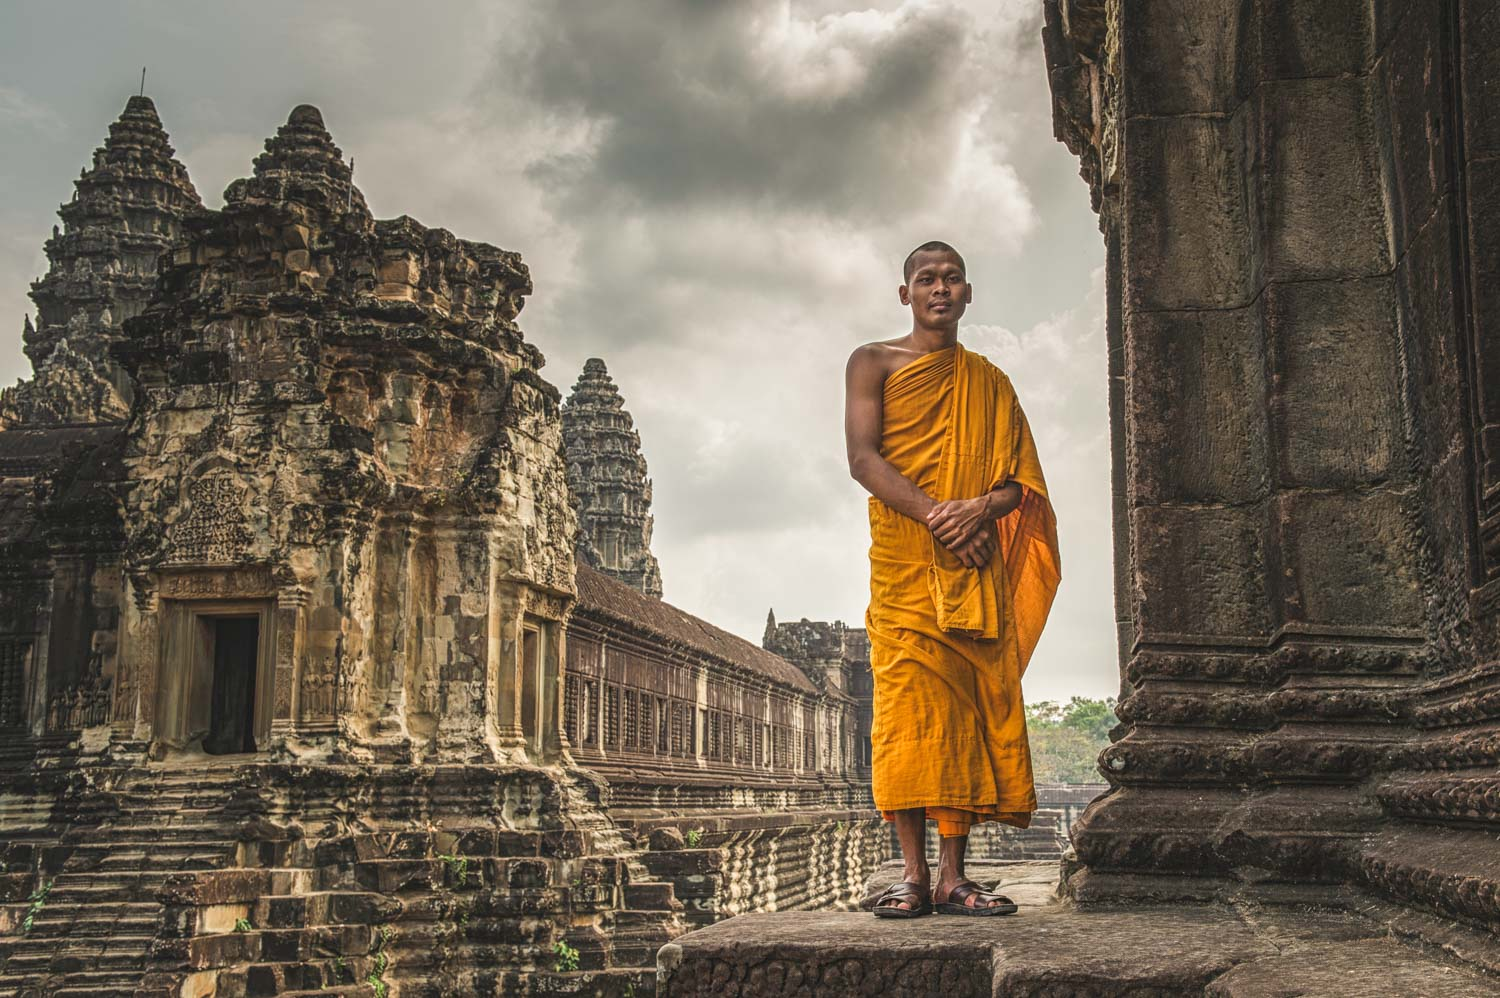 Buddhist Monk outside part of the enormous complex that is Angkor Wat; Nikon D4S, 32mm, f/8, 1/160s, ISO 100